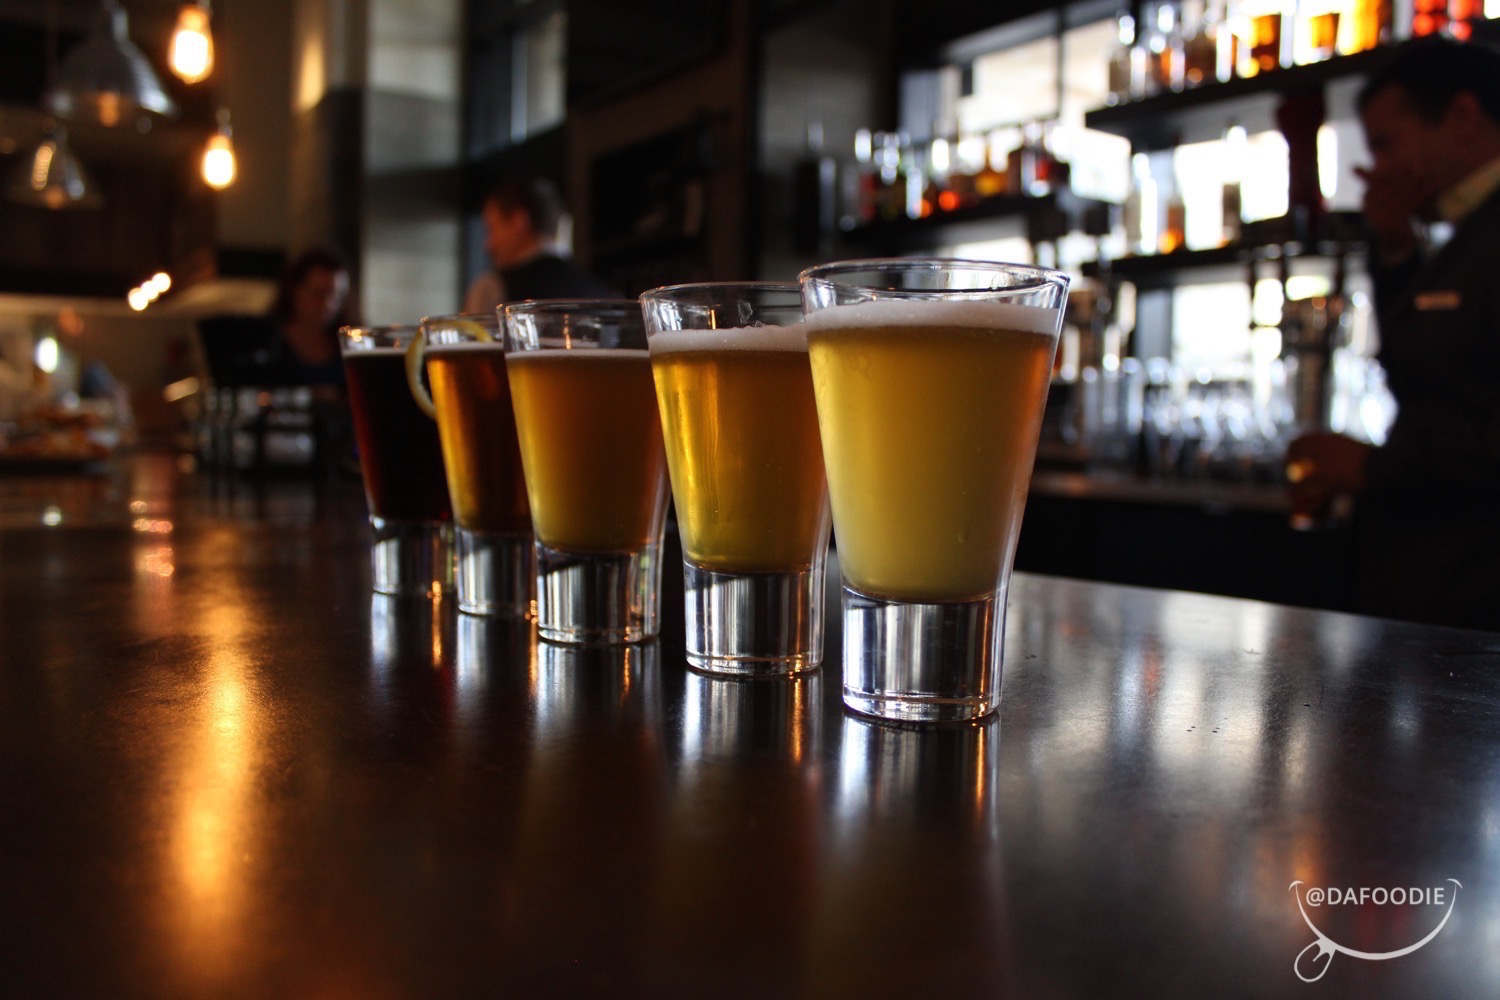 Signature Special Brew varieties include the Maple Bacon Stout, Soup of the Day IPA, and Ghost Pepper Wheat.